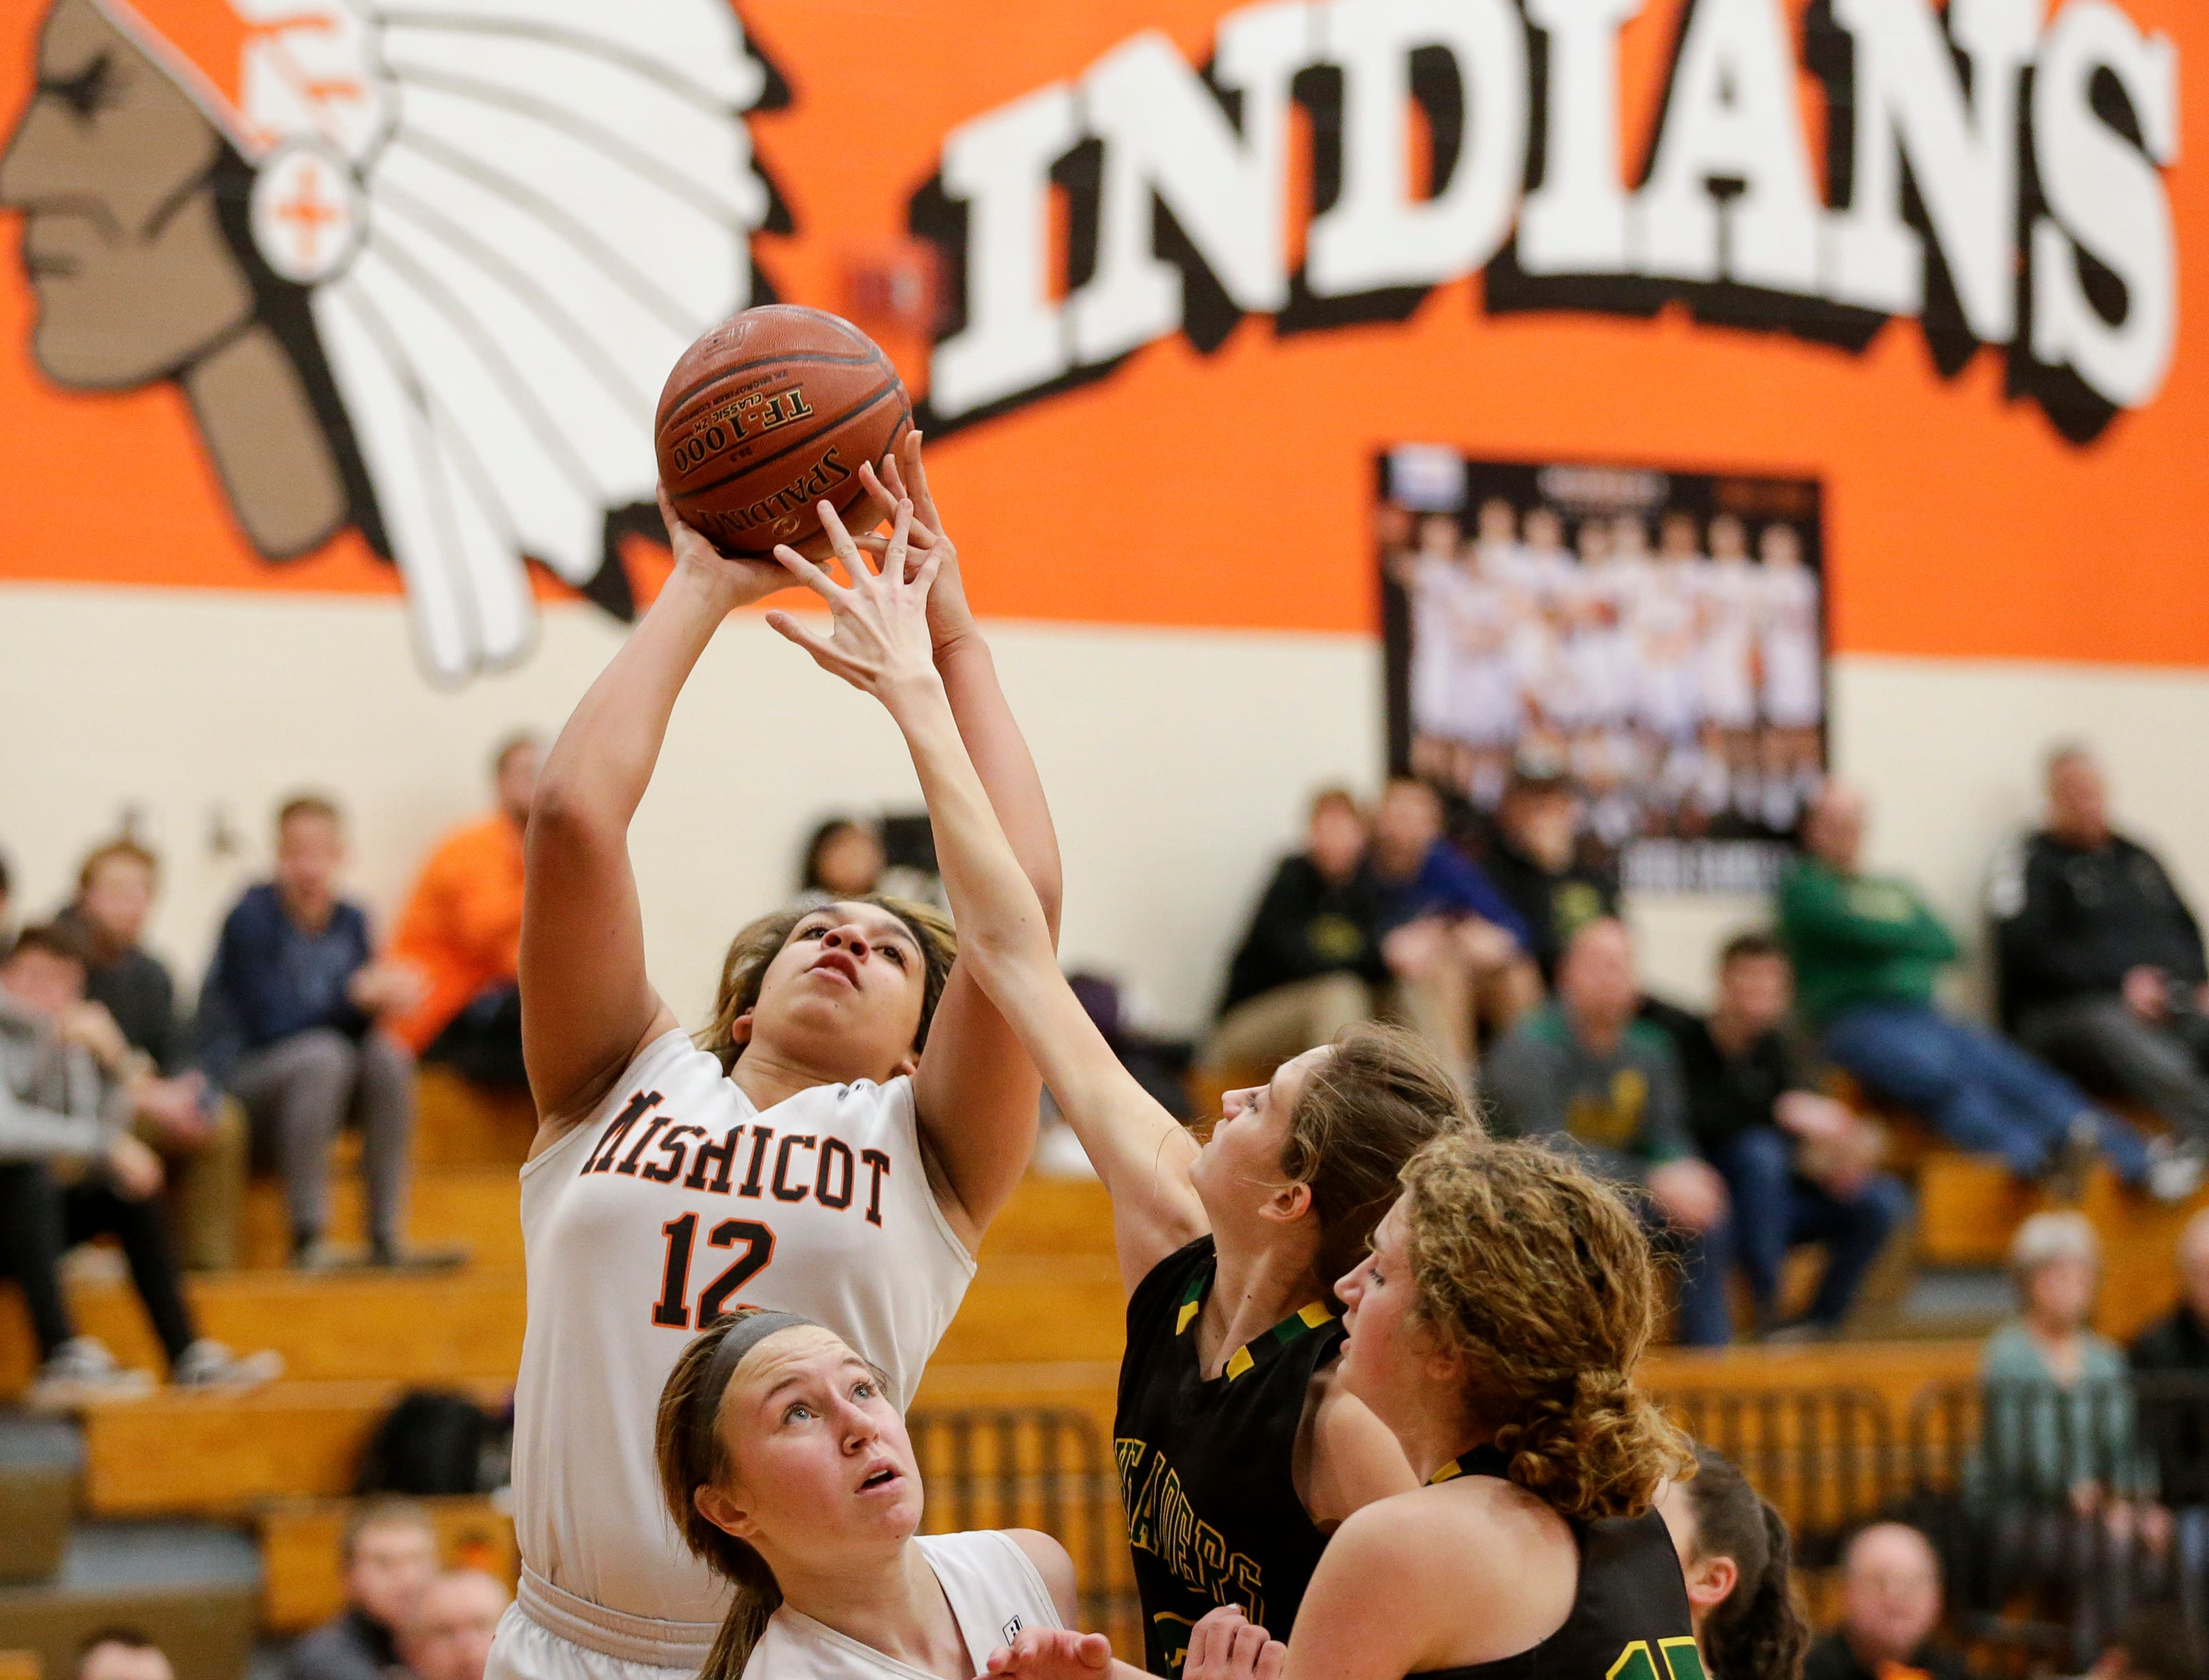 Mishicot's Valentina Stueck (12) looks to shoot against Sheboygan Area Lutheran during a Big East Conference matchup at Mishicot High School Friday, January 11, 2019, in Mishicot, Wis. Joshua Clark/USA TODAY NETWORK-Wisconsin